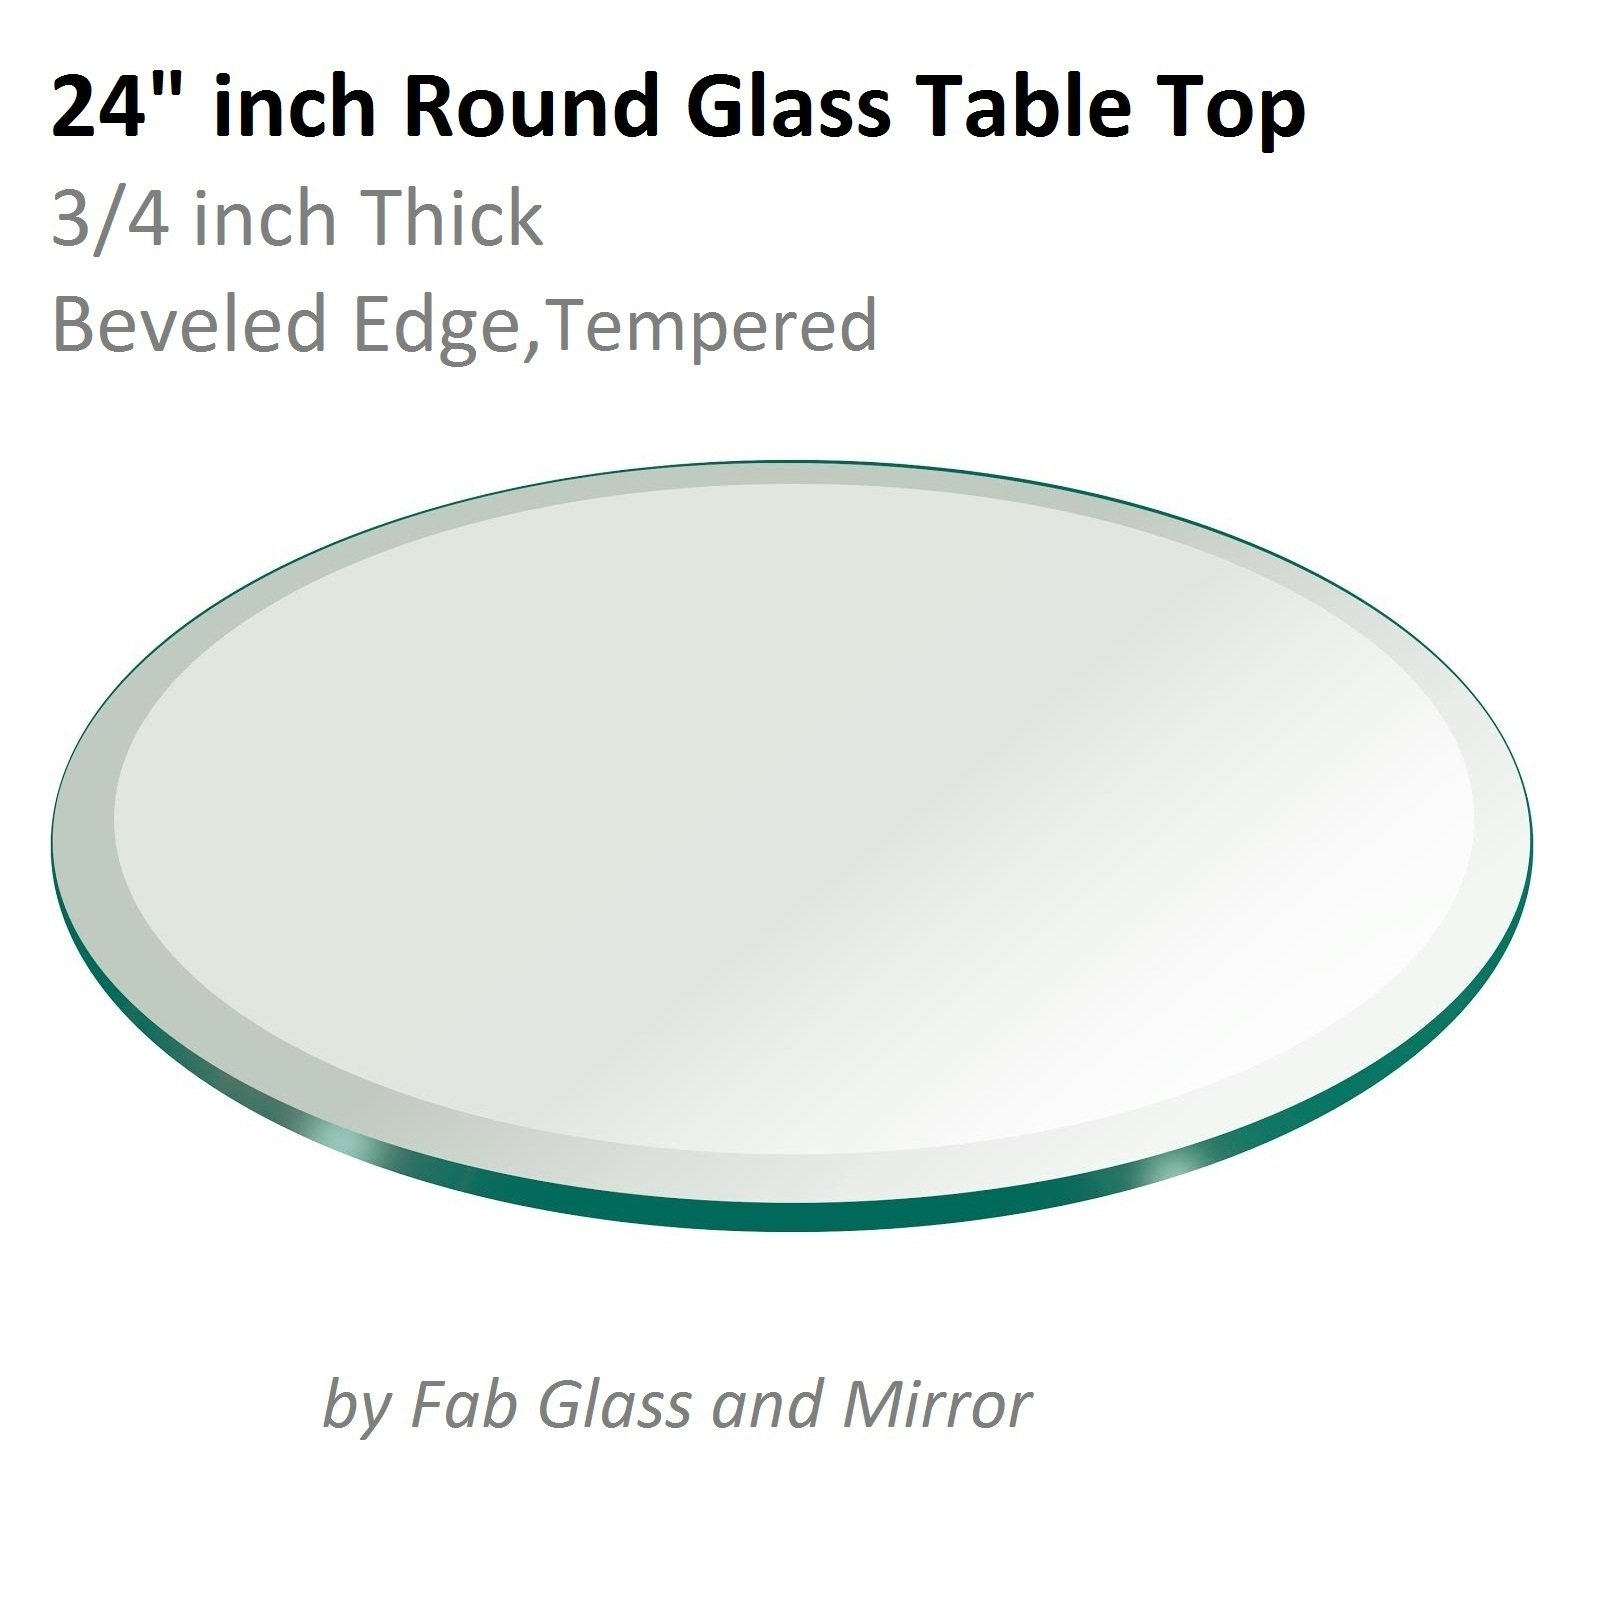 24'' Inch Round Glass Table Top 3/4'' Thick Tempered Beveled Edge by Fab Glass and Mirror by Fab Glass and Mirror